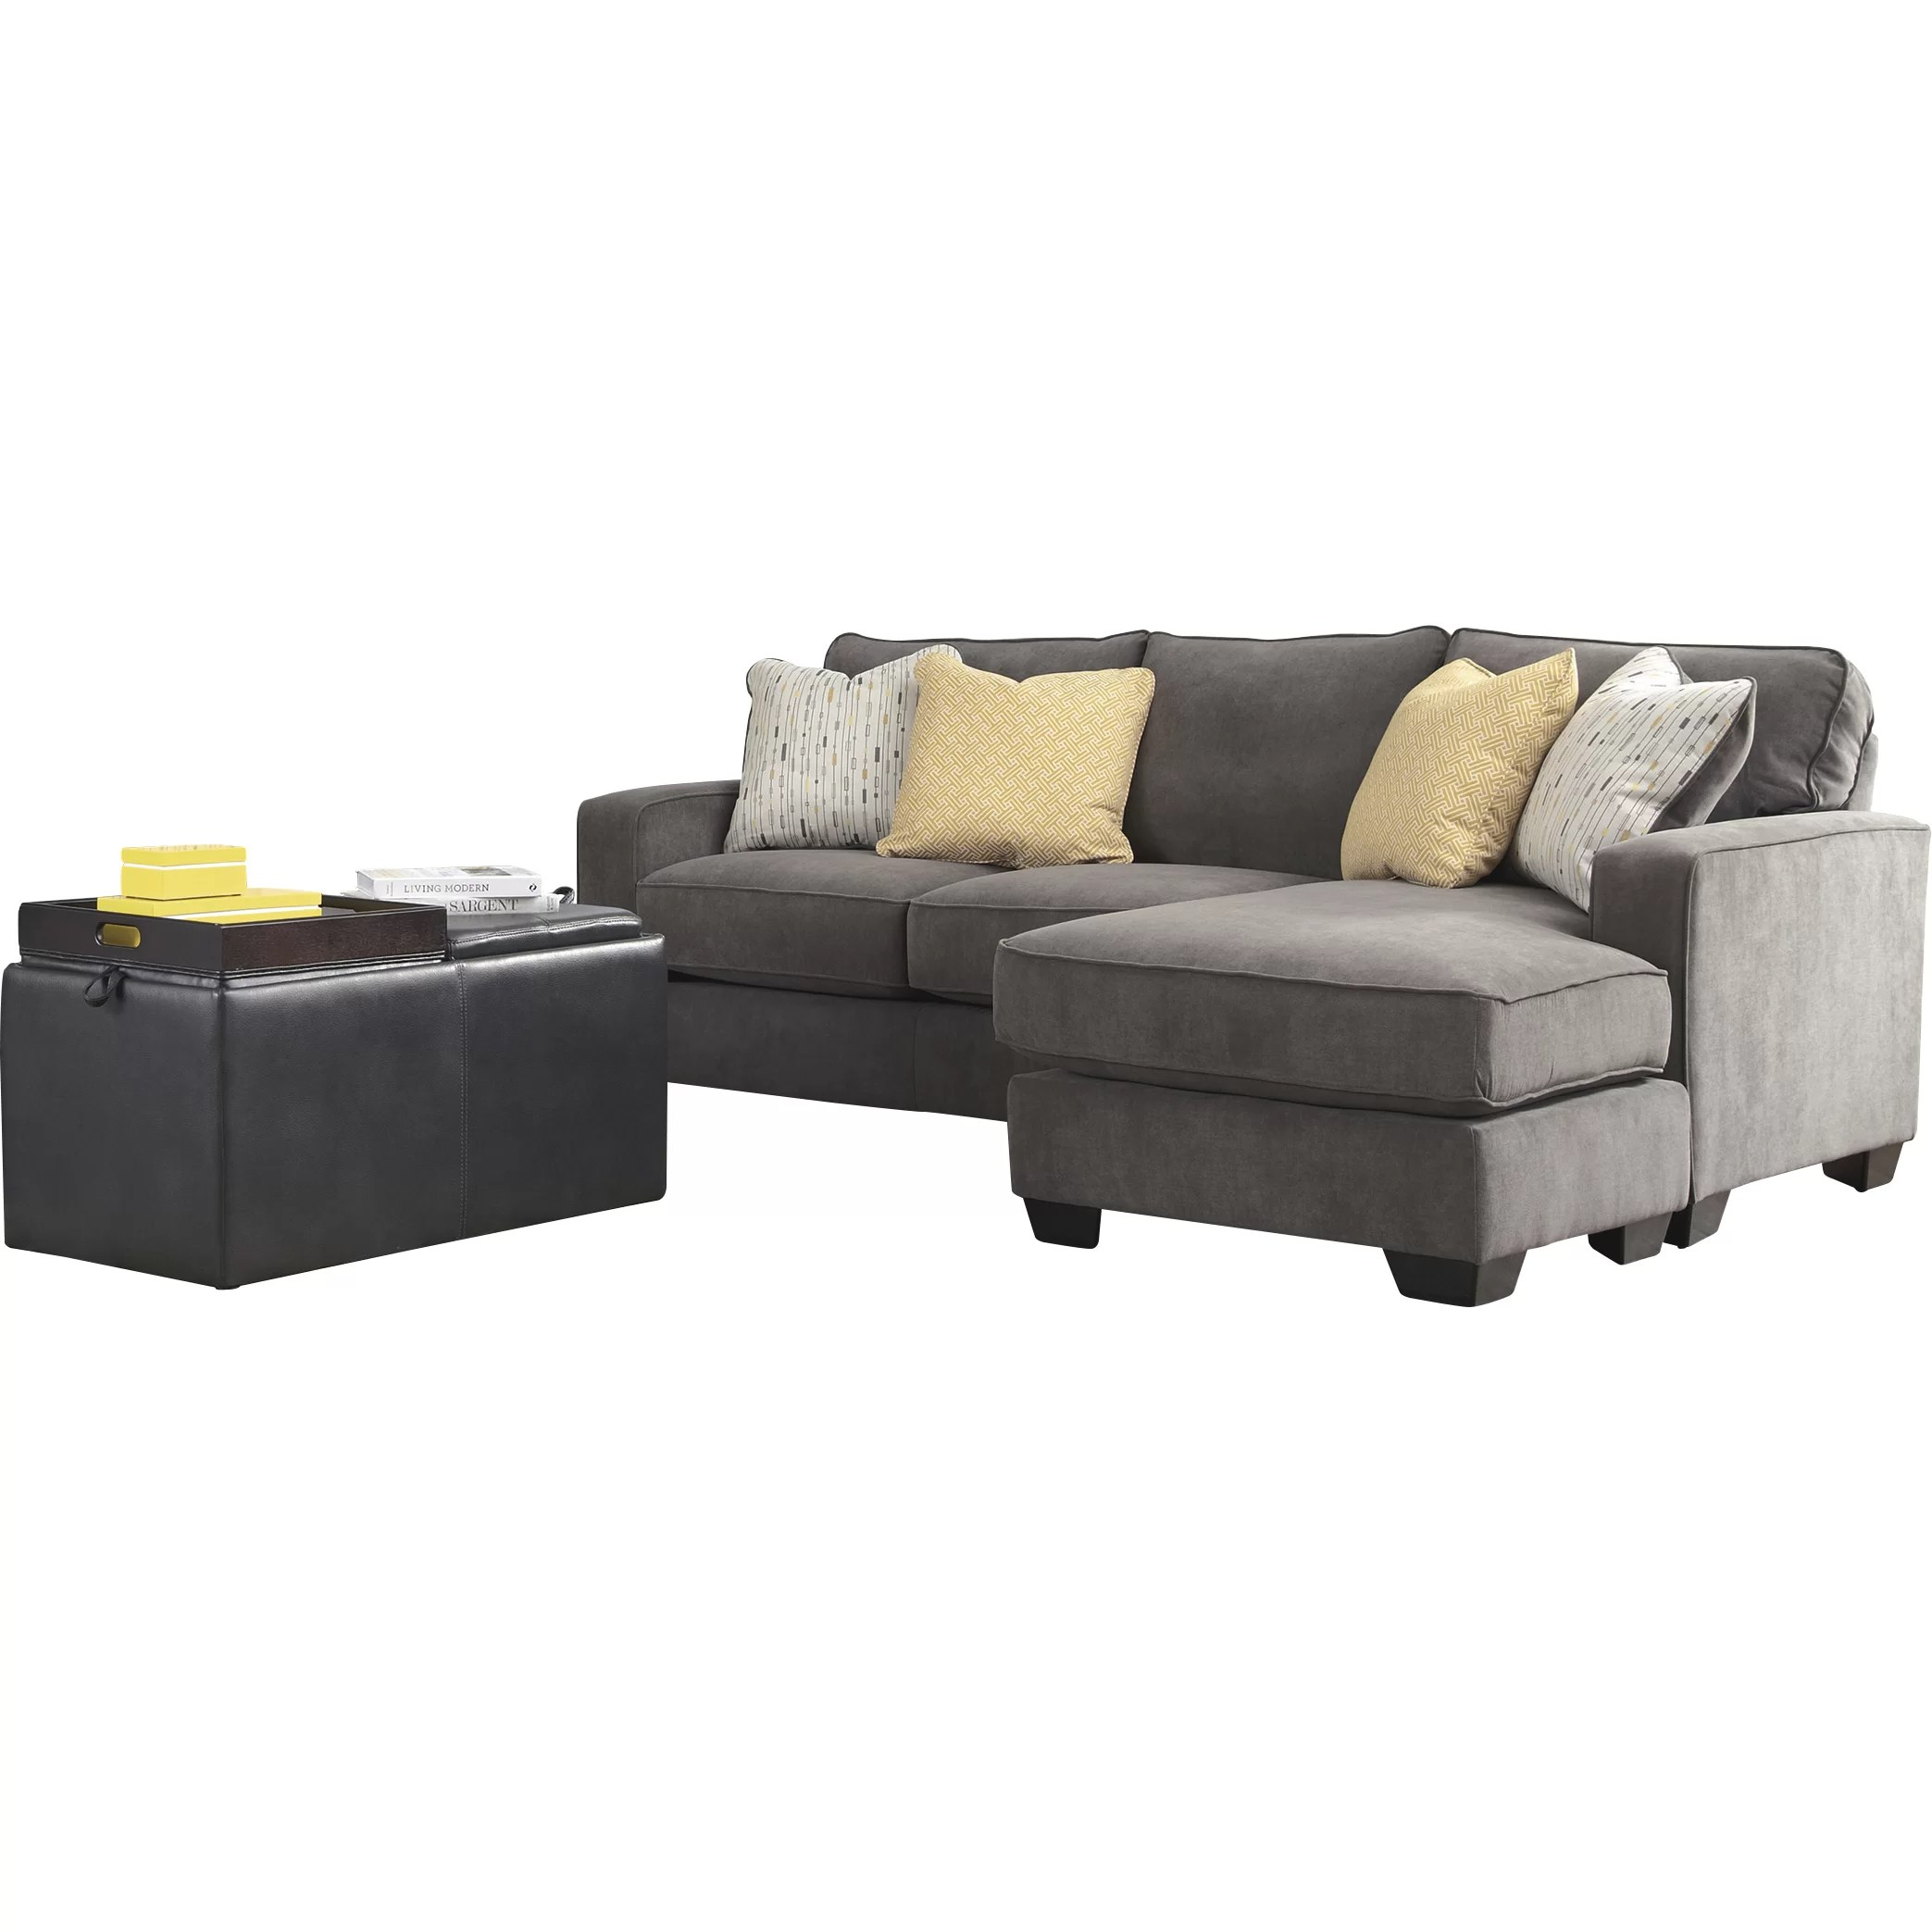 reversible sectional sofas with chaise l shaped sofa 2 recliners mercer41 kessel and reviews